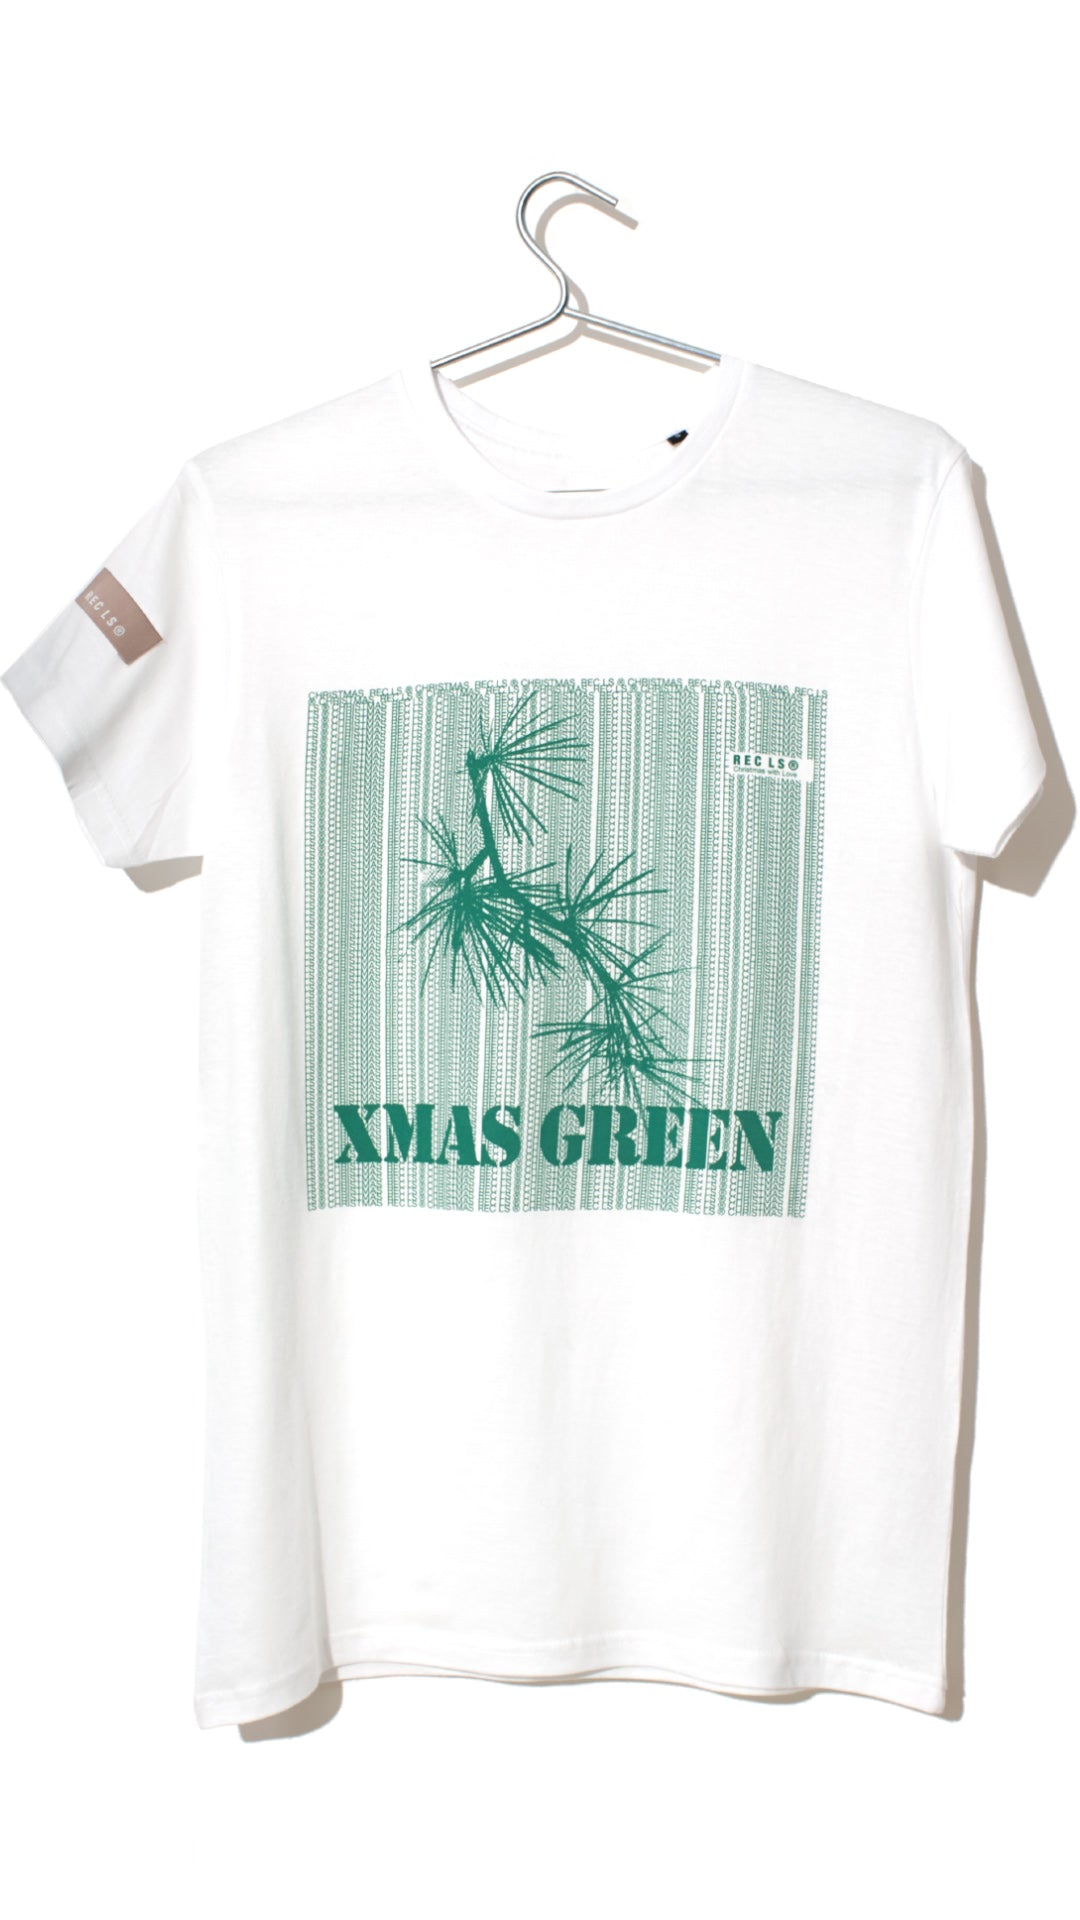 XmasGreen, T-shirt